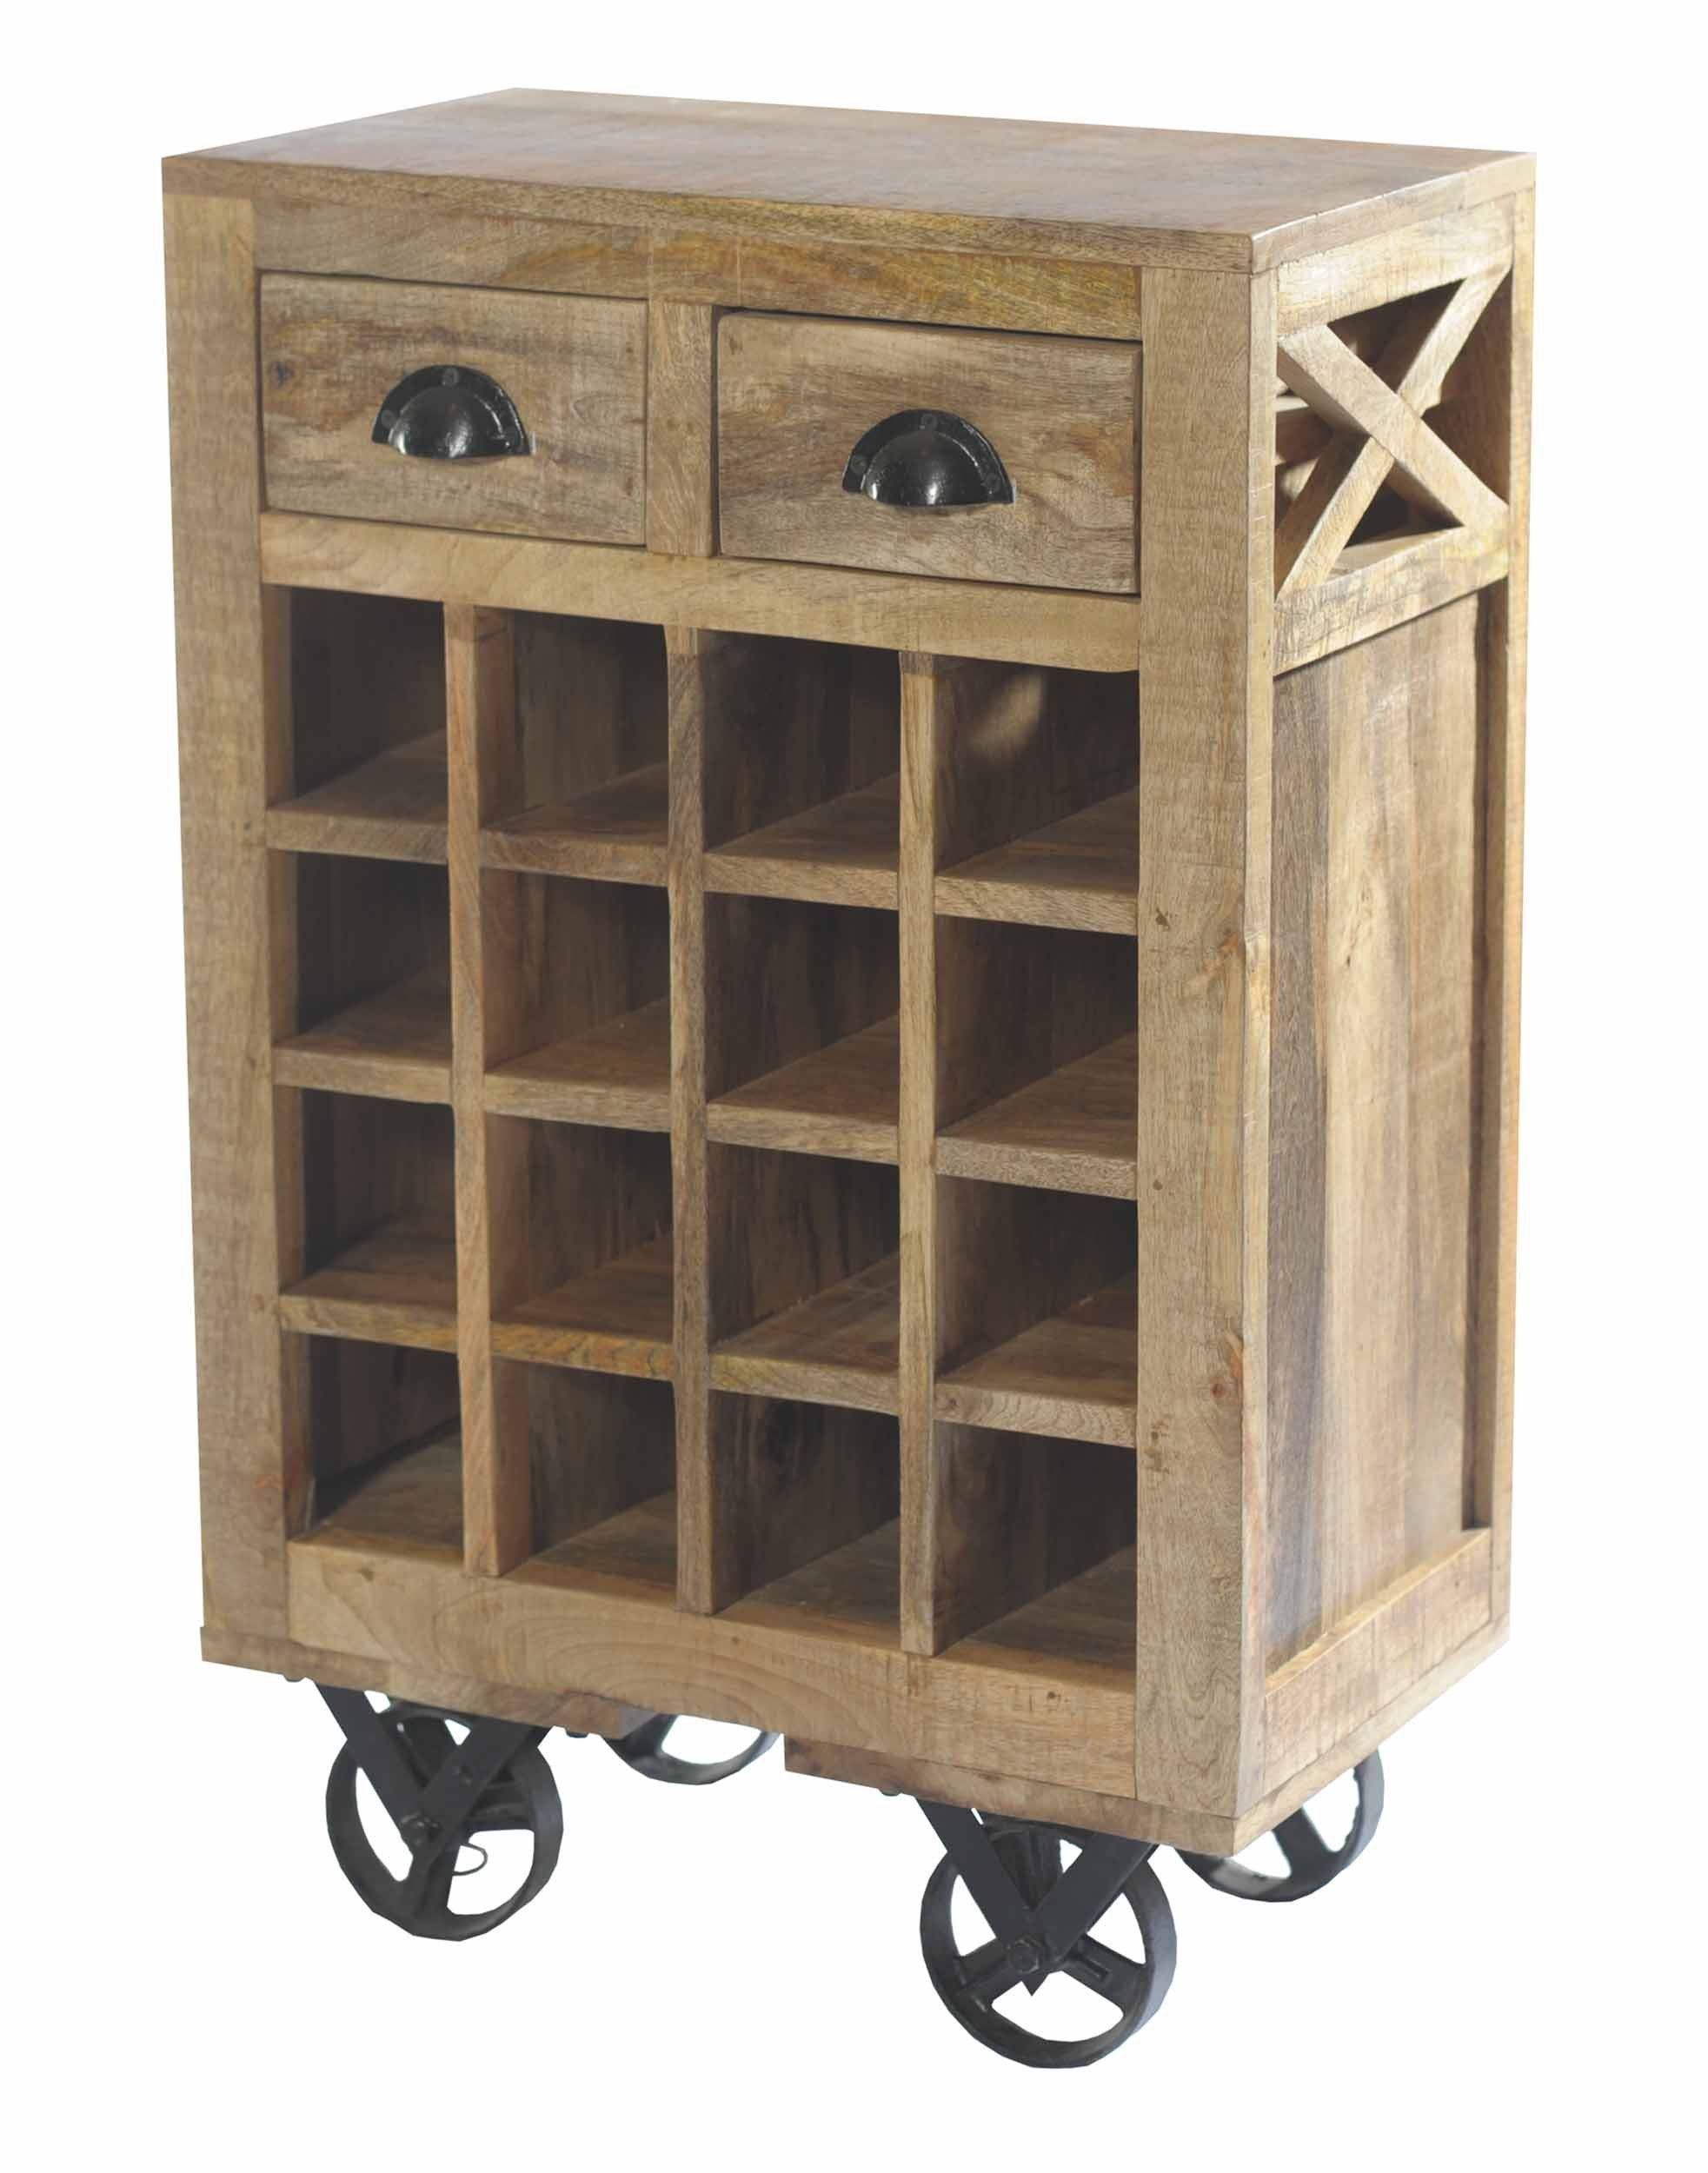 Amazon.com: HOMELEGANCE 6481 Wood Wine Cart with Rack on Wheels, Brown: Home & Kitchen